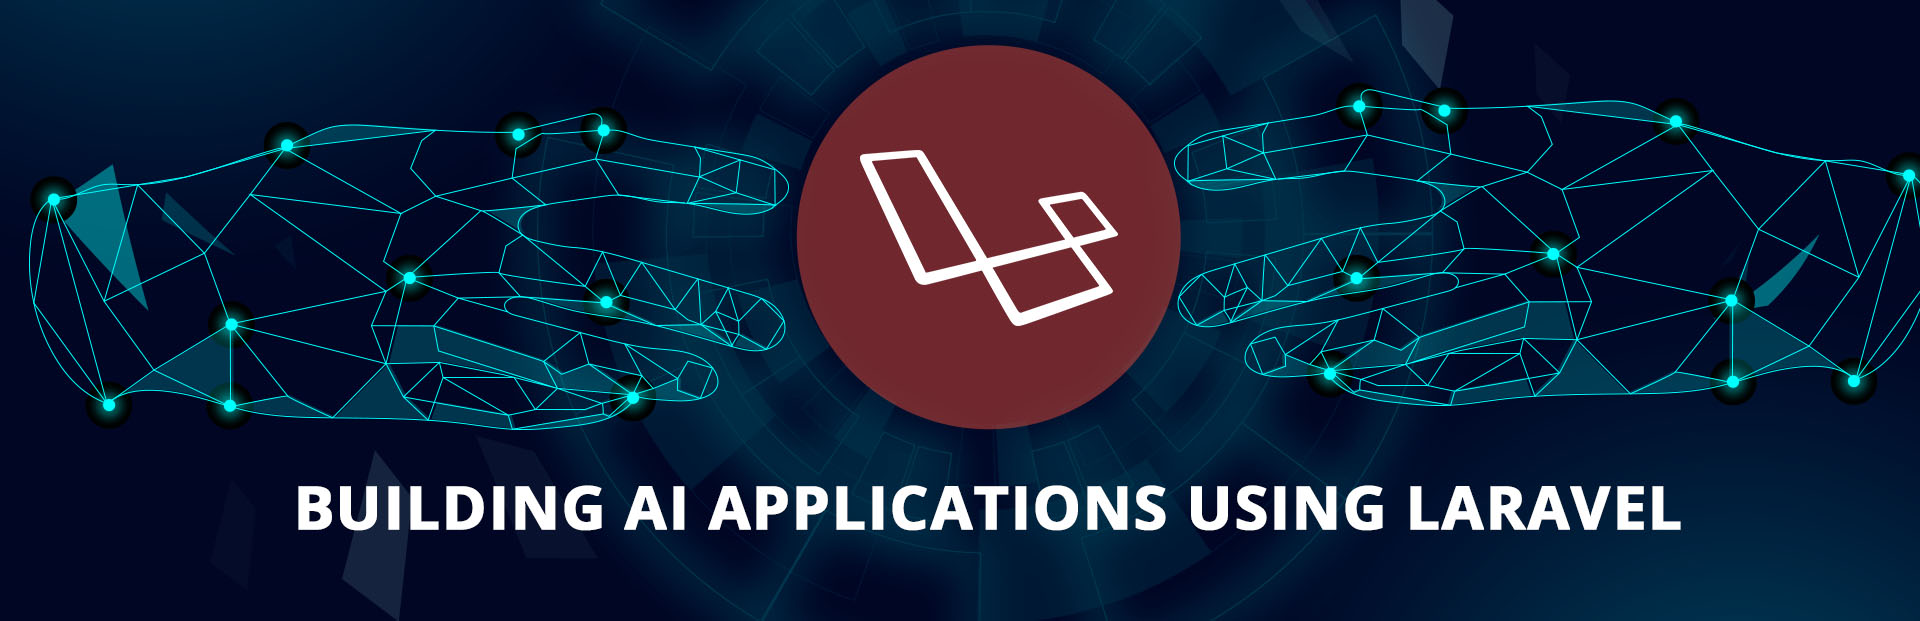 How to build AI applications using Laravel?